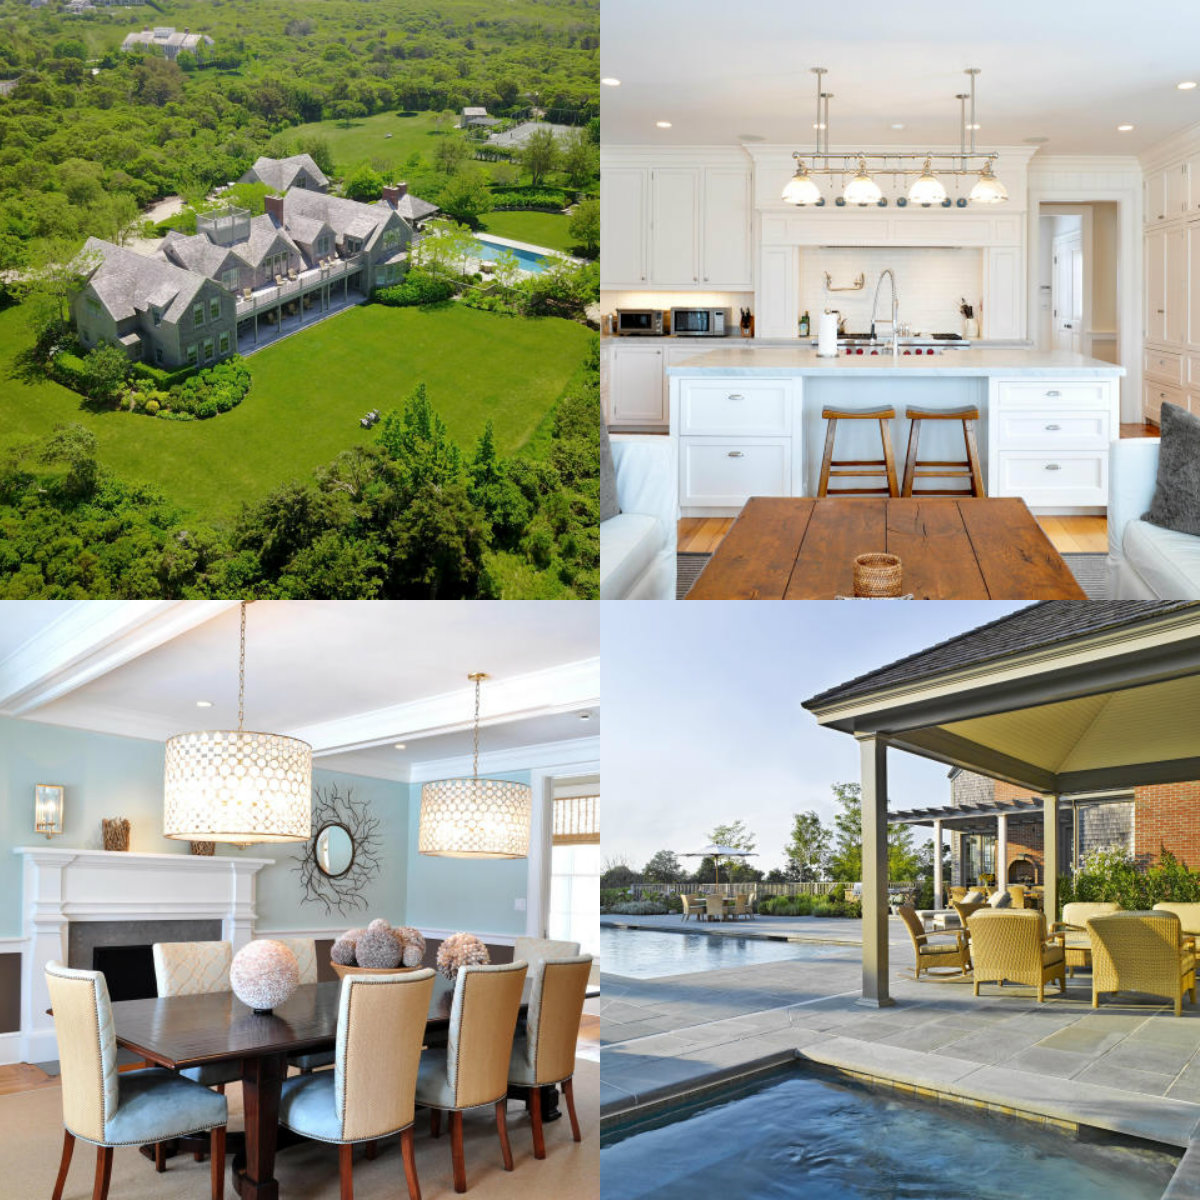 4 images of 4 Wingspread Lane in Nantucket in Cape Cod MA